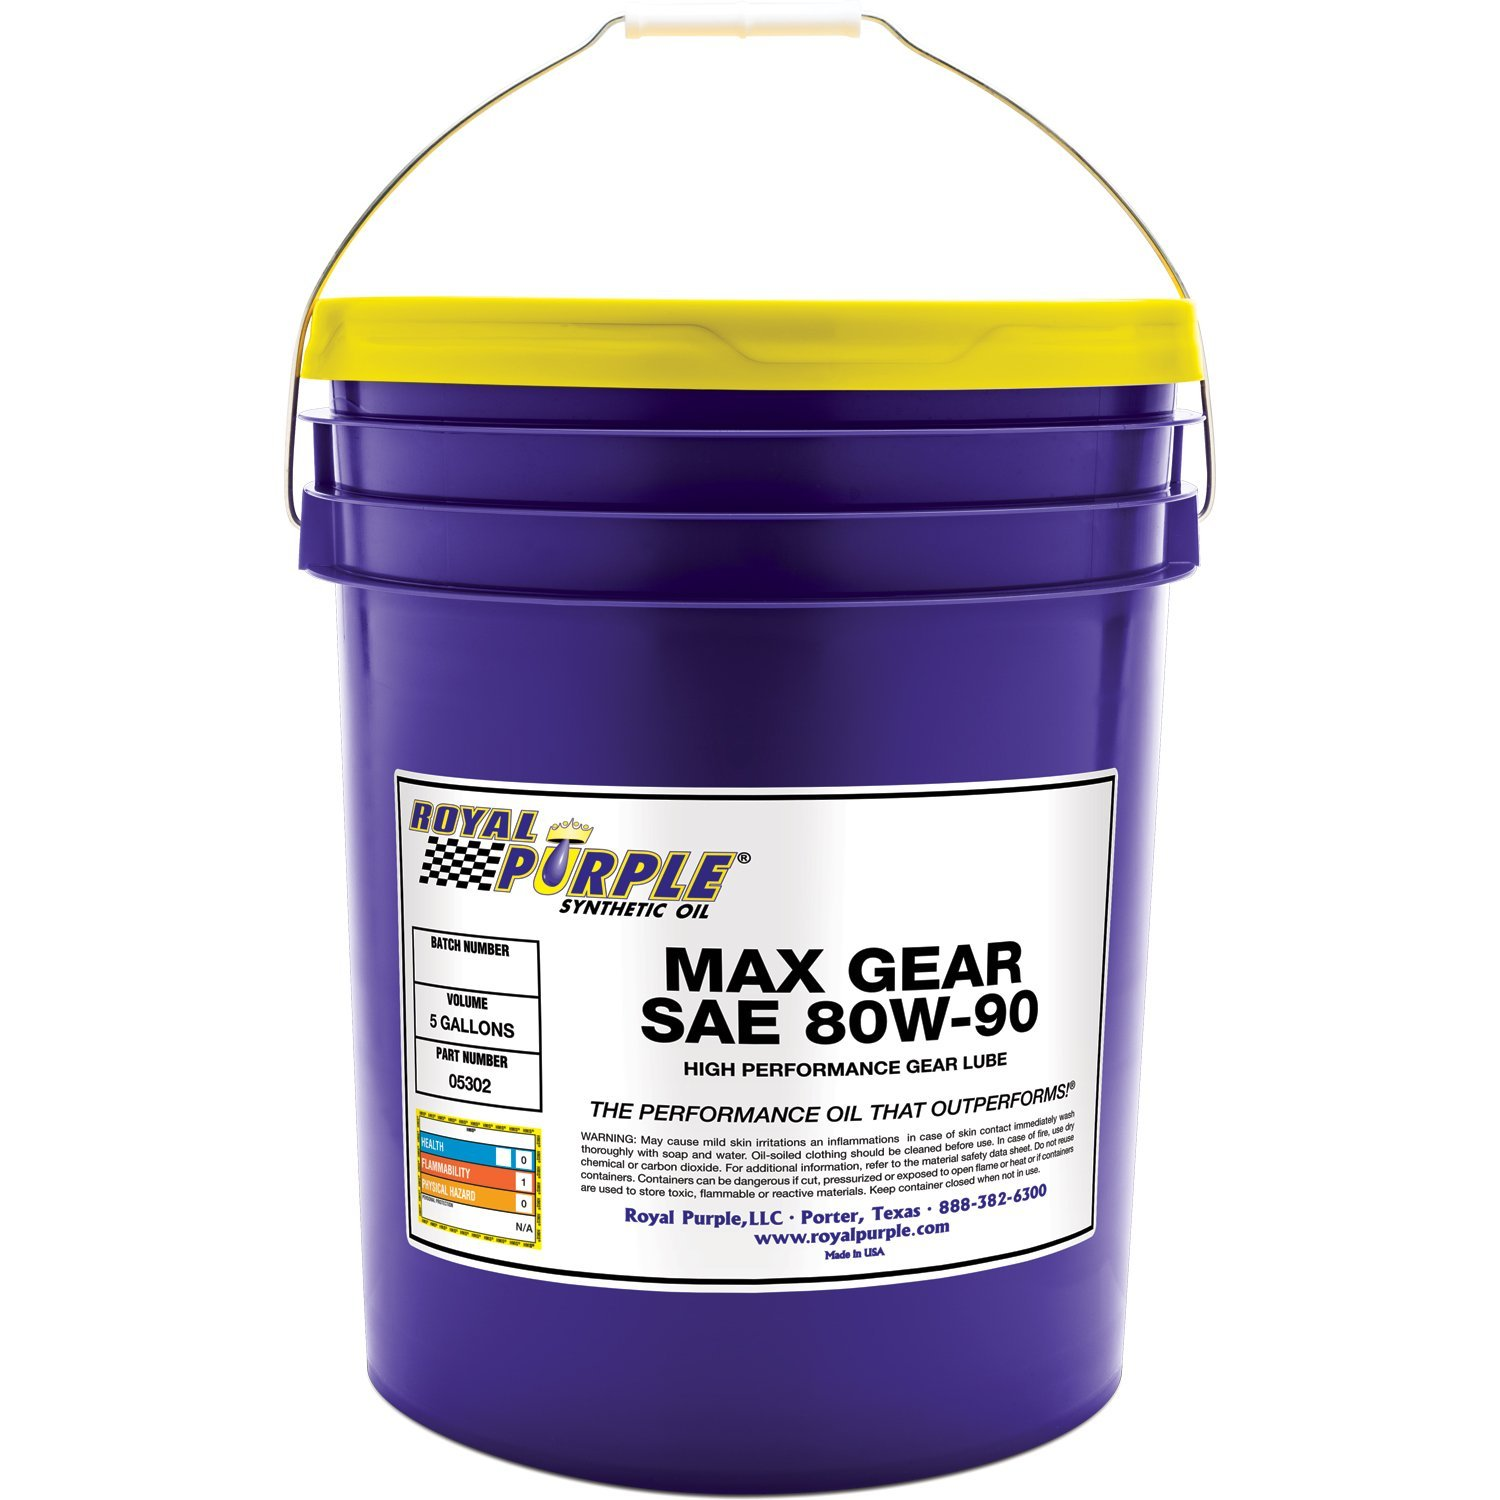 Royal Purple 05302 Max Gear 80W-90 High Performance Synthetic Automotive Gear Oil - 5 gal. by Royal Purple